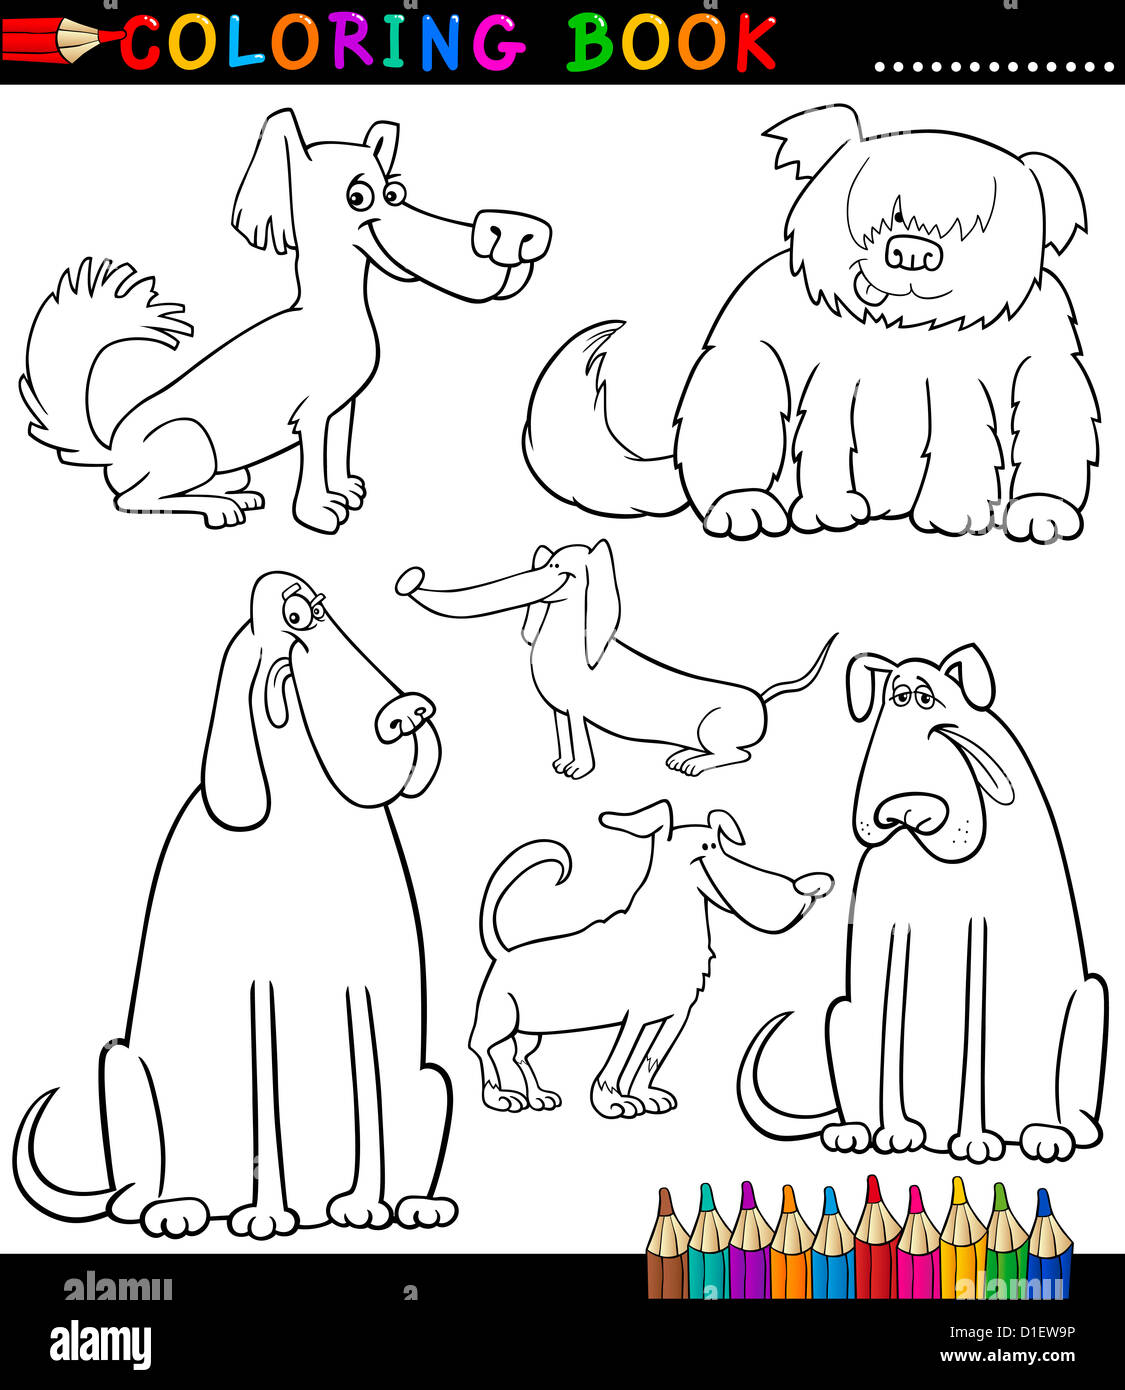 Elegant Coloring Book Or Coloring Page Black And White Cartoon Illustration Of  Funny Purebred Or Mongrel Dogs And Puppies